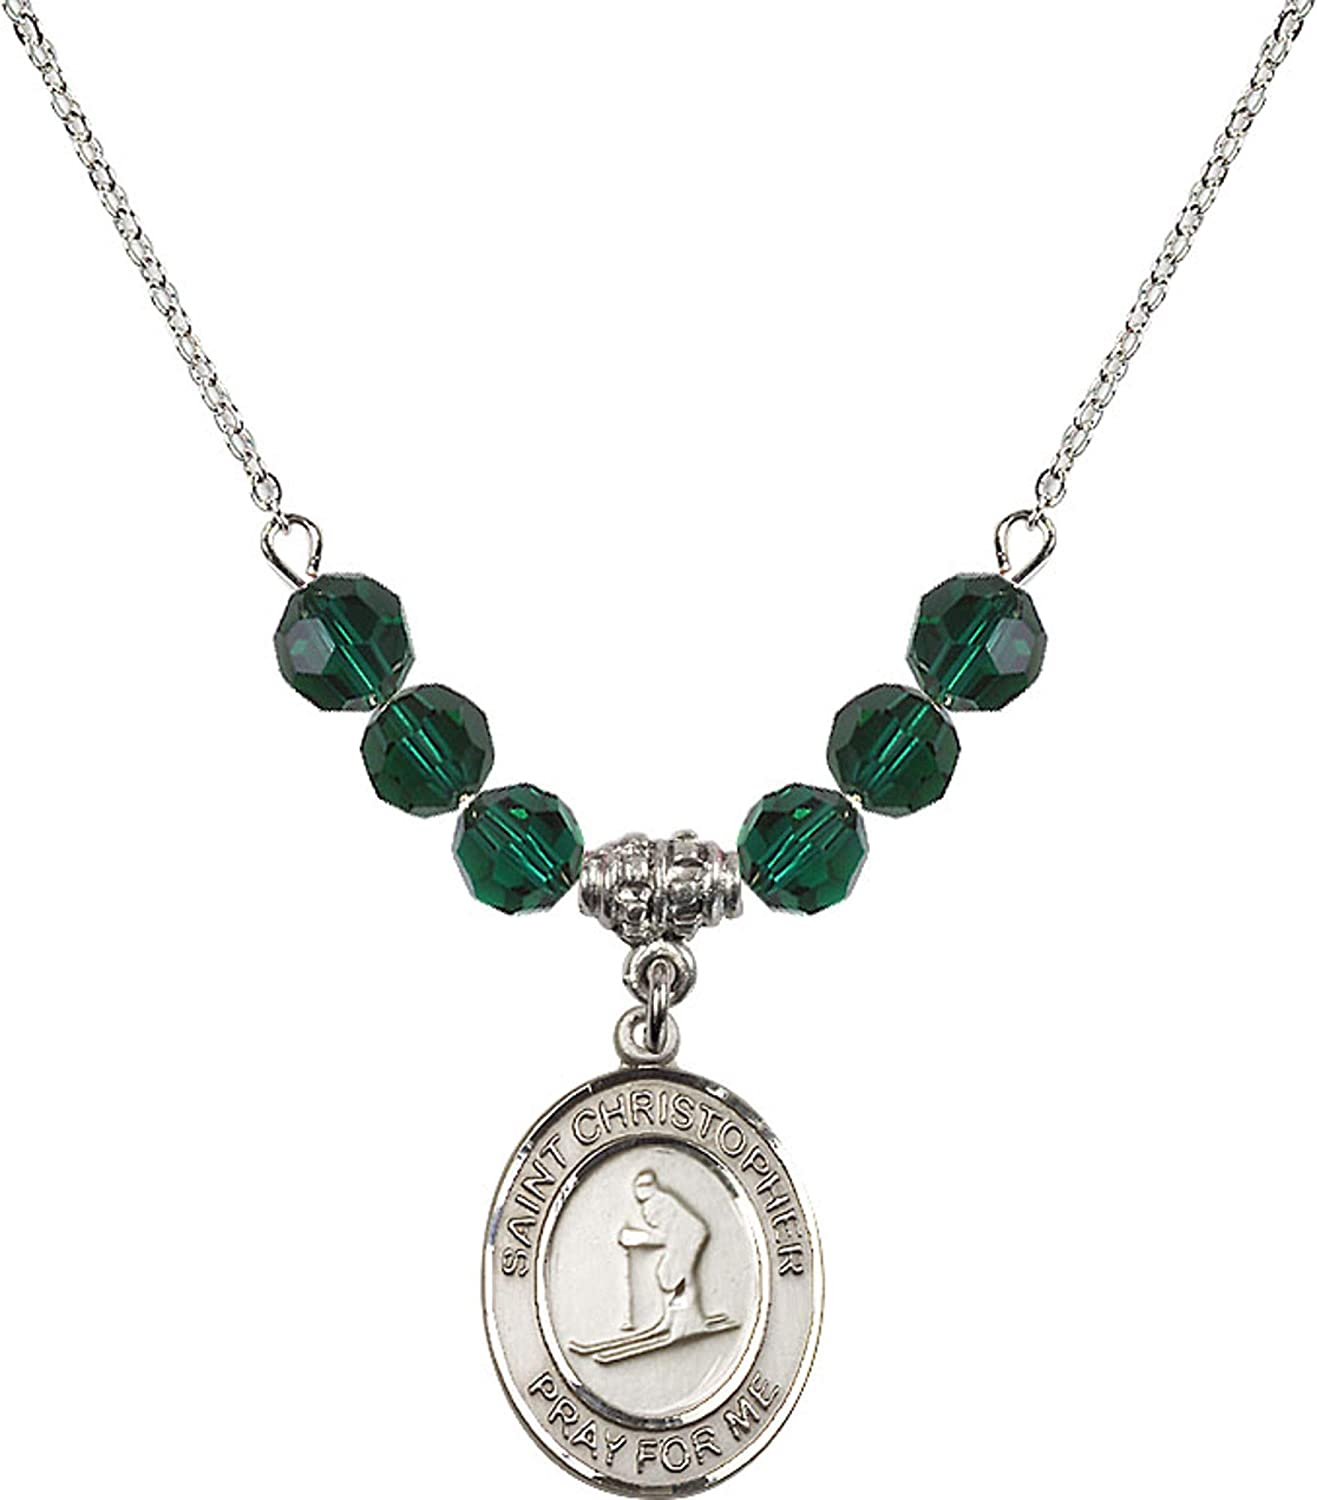 Bonyak Jewelry 18 Inch Rhodium Plated Necklace w// 6mm Green May Birth Month Stone Beads and Saint Christopher//Skiing Charm